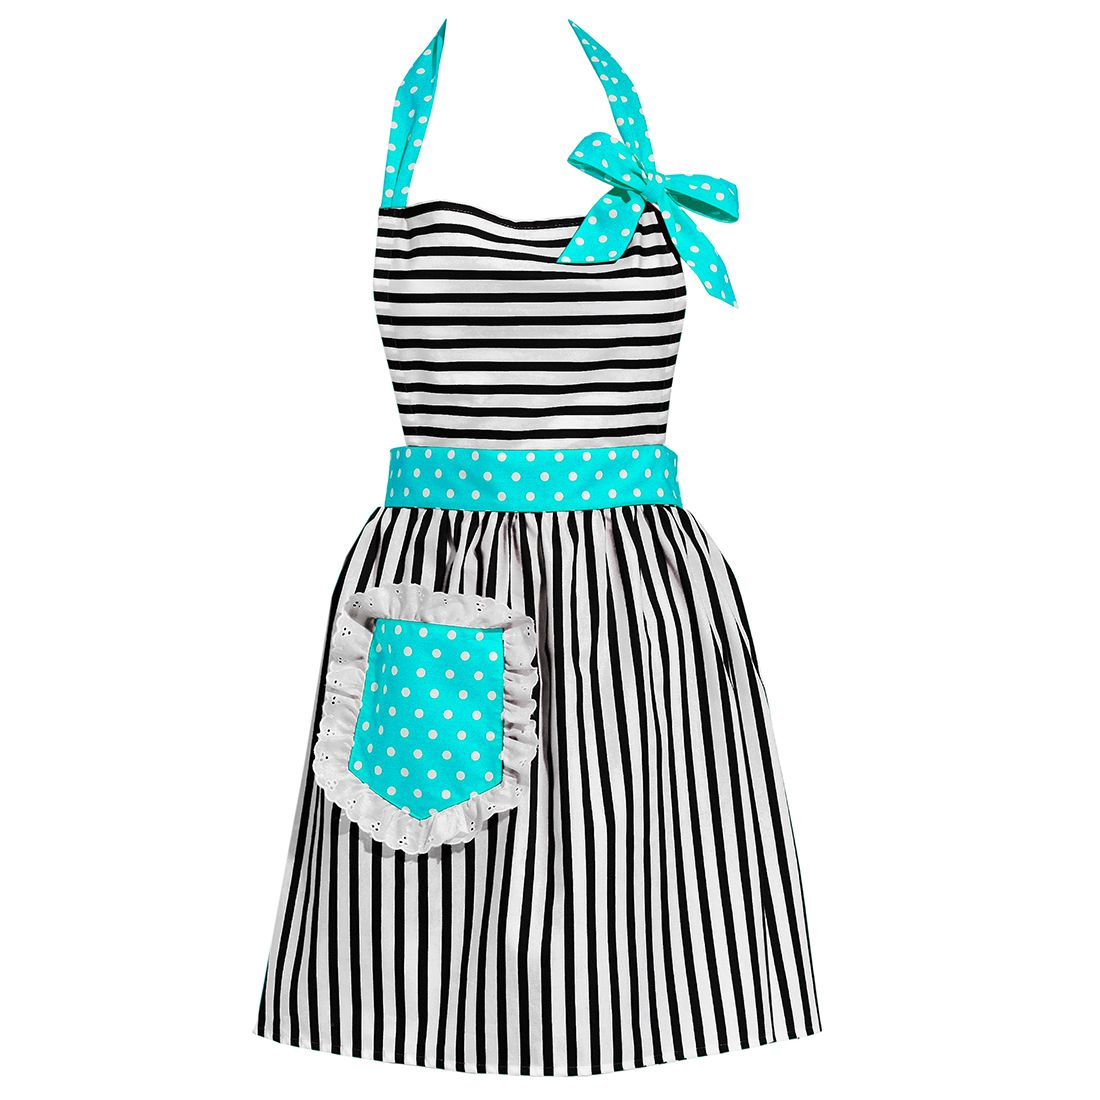 Dorothy Aqua Apron | Apron, Aqua and Craft fairs